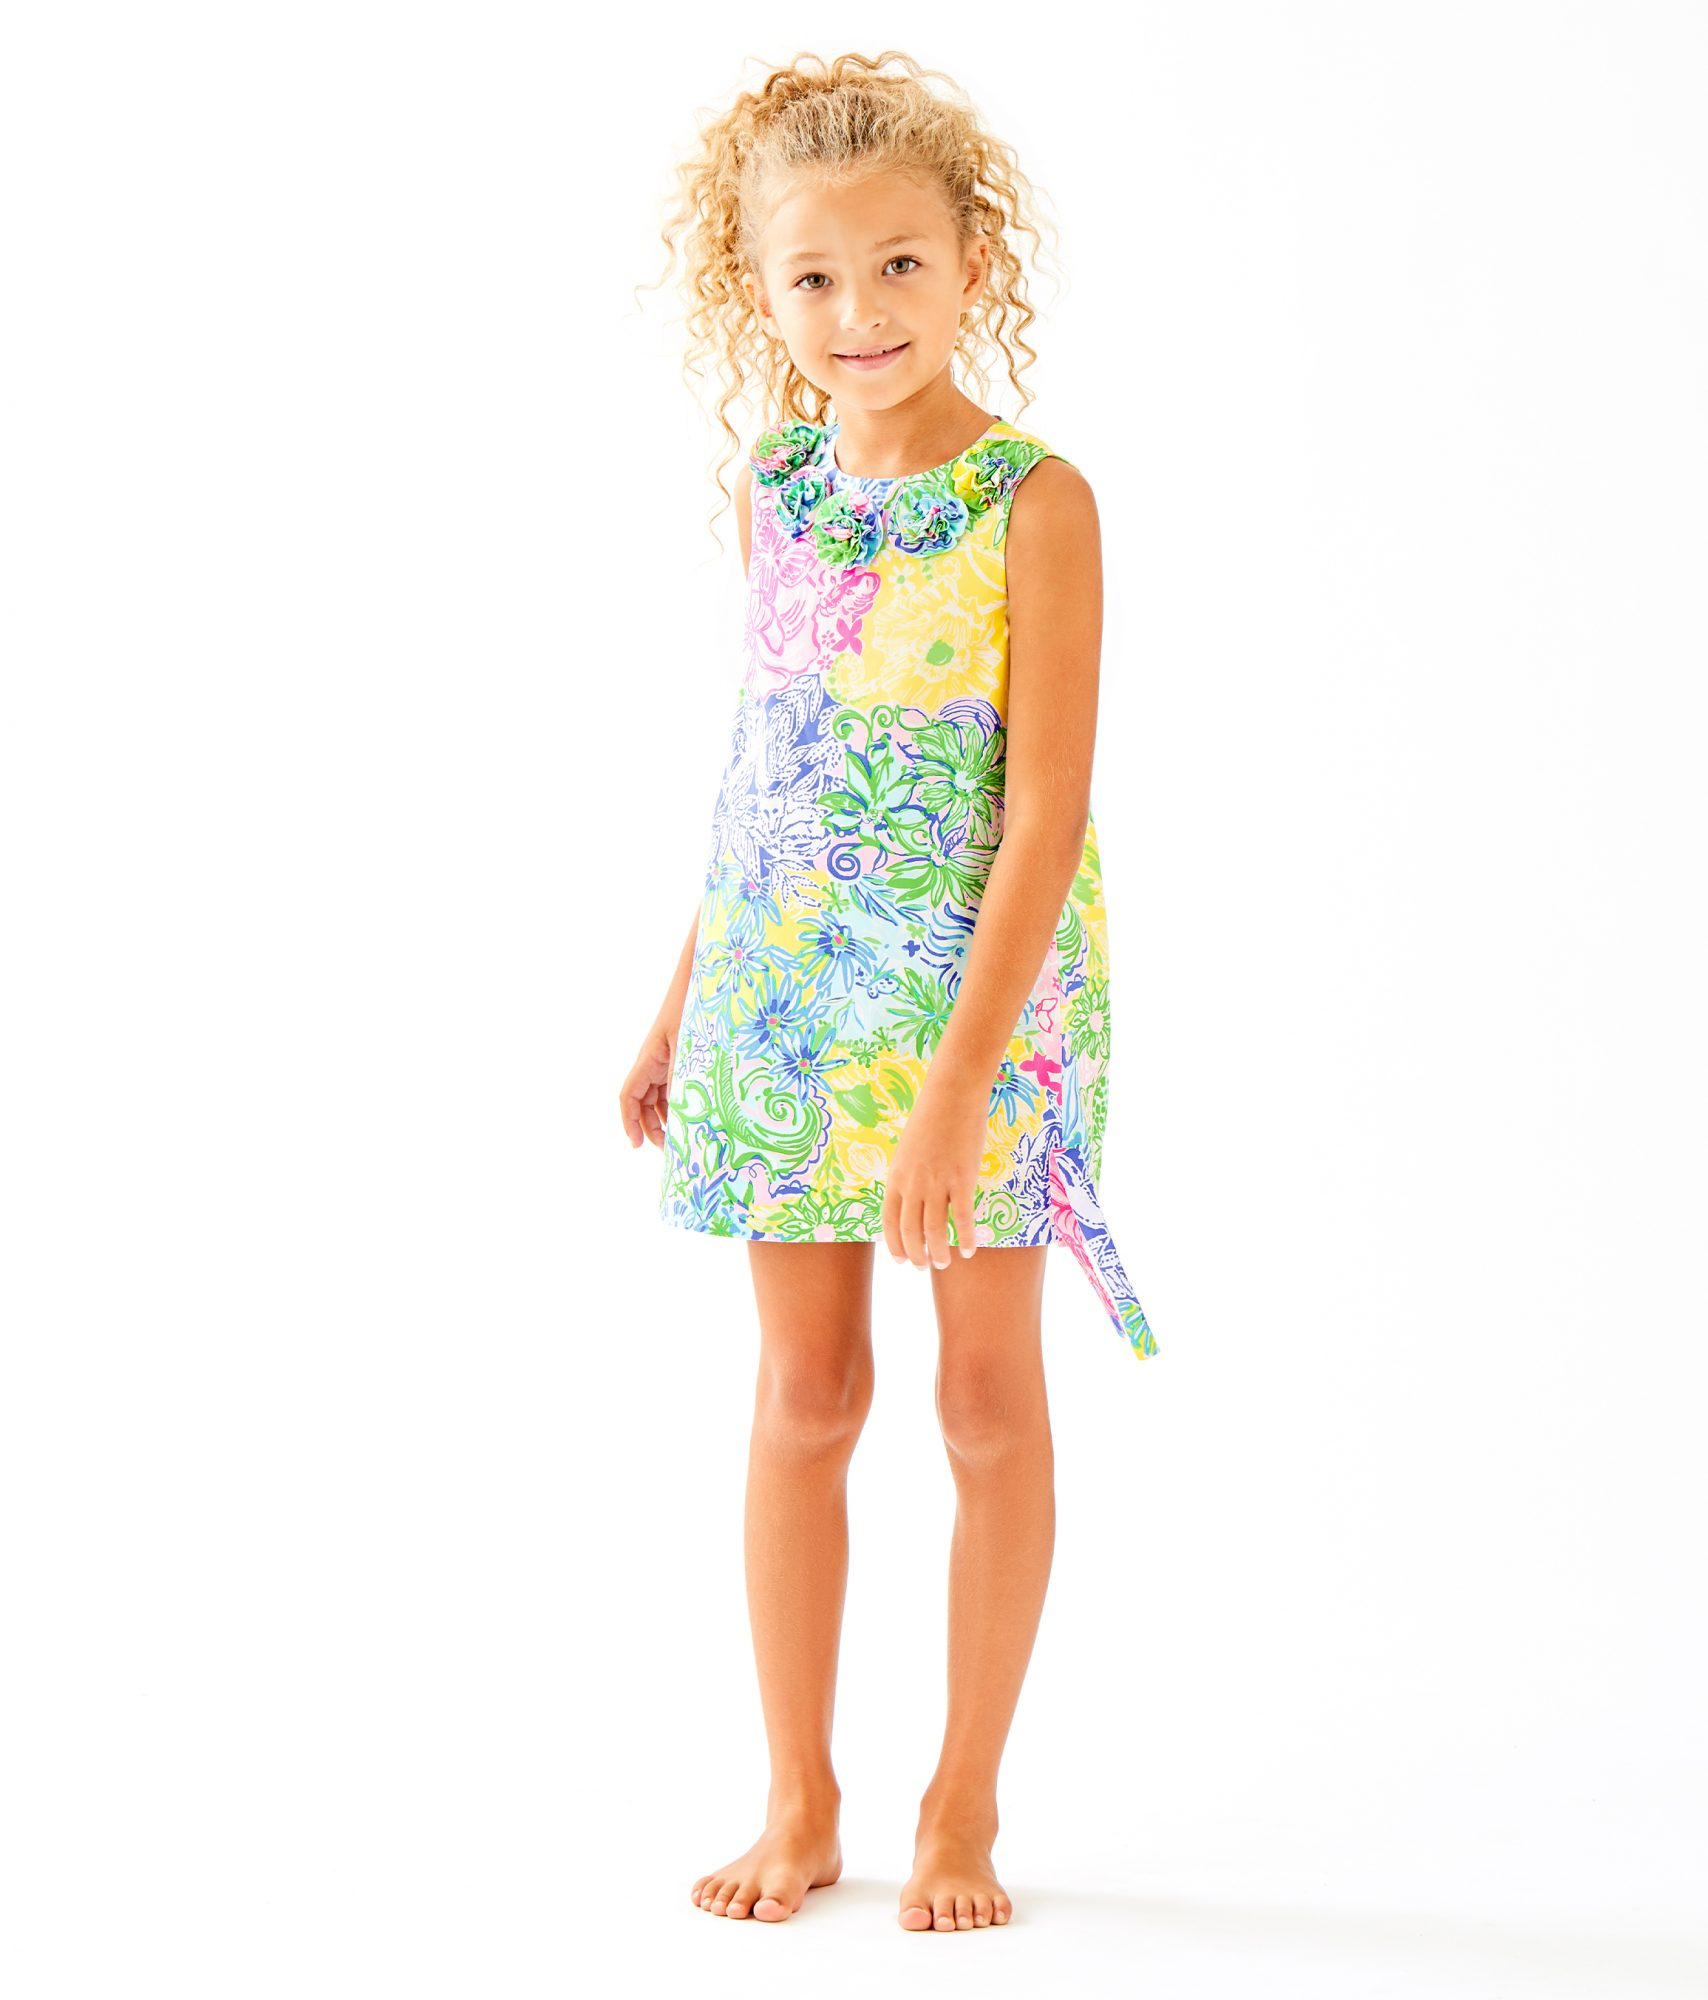 Little-Lilly-On-Model